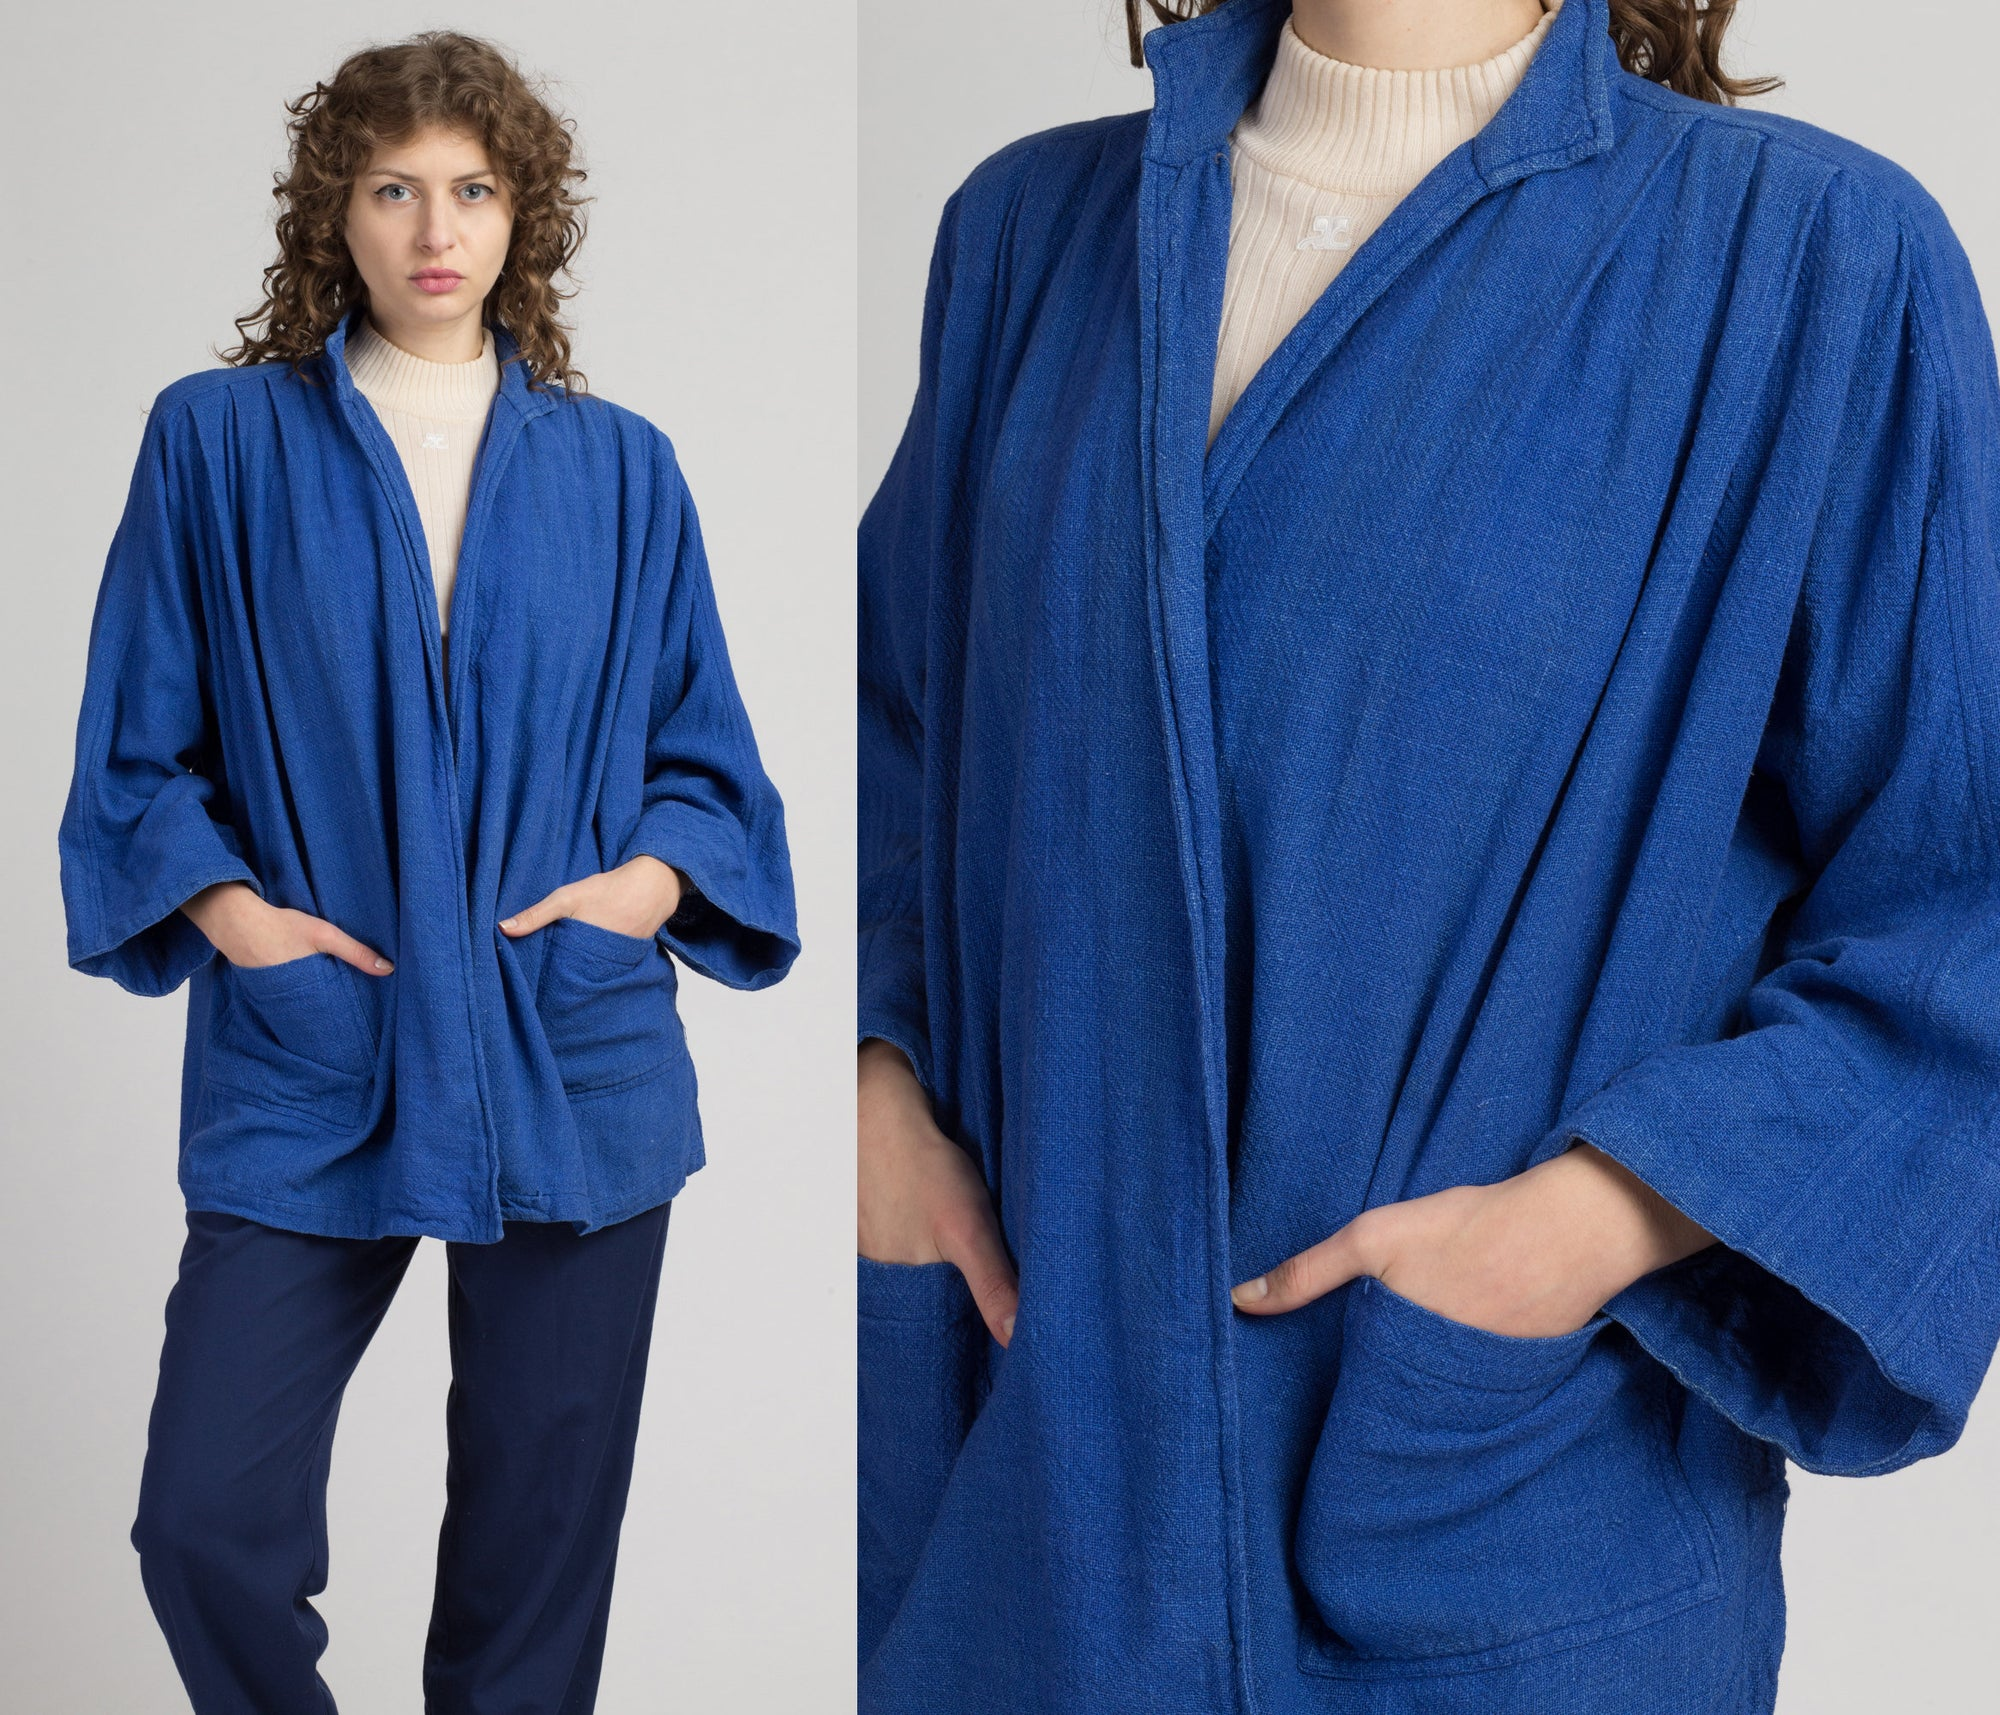 70s Sangam Imports Blue Cotton Haori Jacket - One Size | Vintage Boho Minimalist Lightweight Open Fit Top